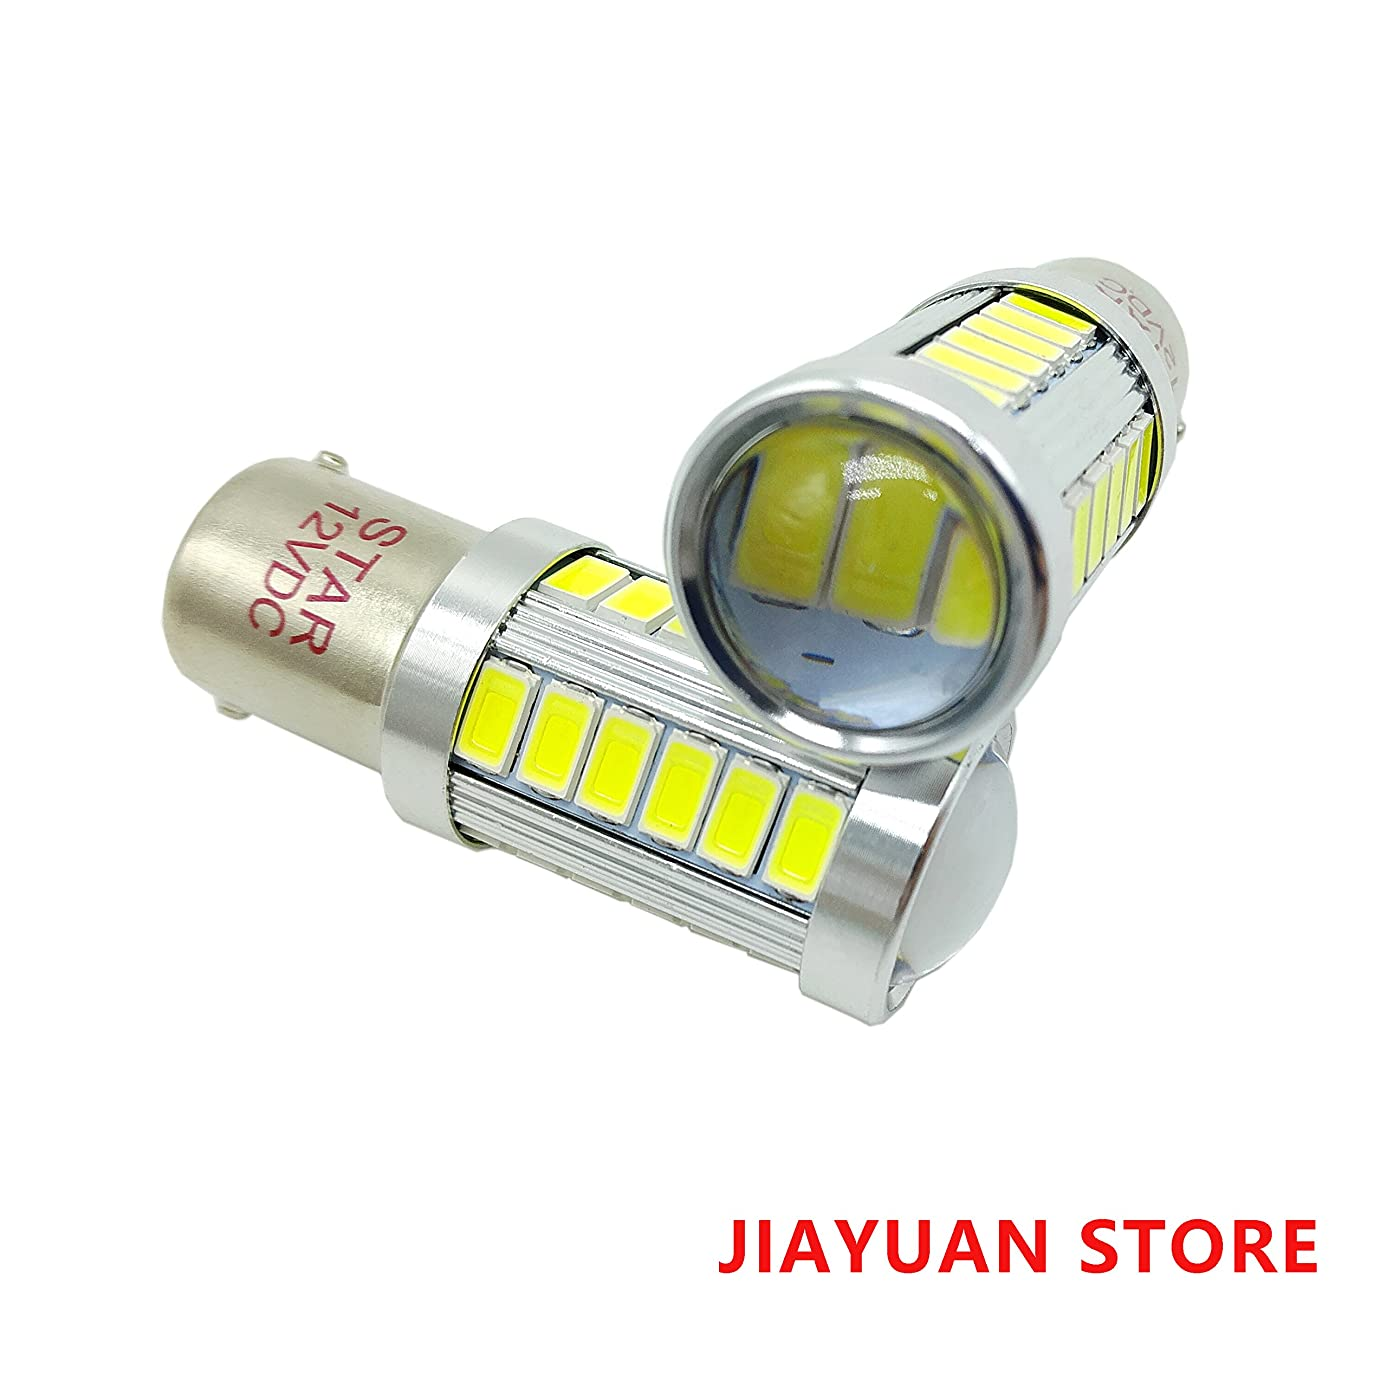 JIAYUAN BA15D 12V 1004 1142 90 1076 33-SMD LED Bulbs for Car Camper Interior Light Motorcycle LED Bulbs Replacement for Marine Boat RV with lens White 2-Pack